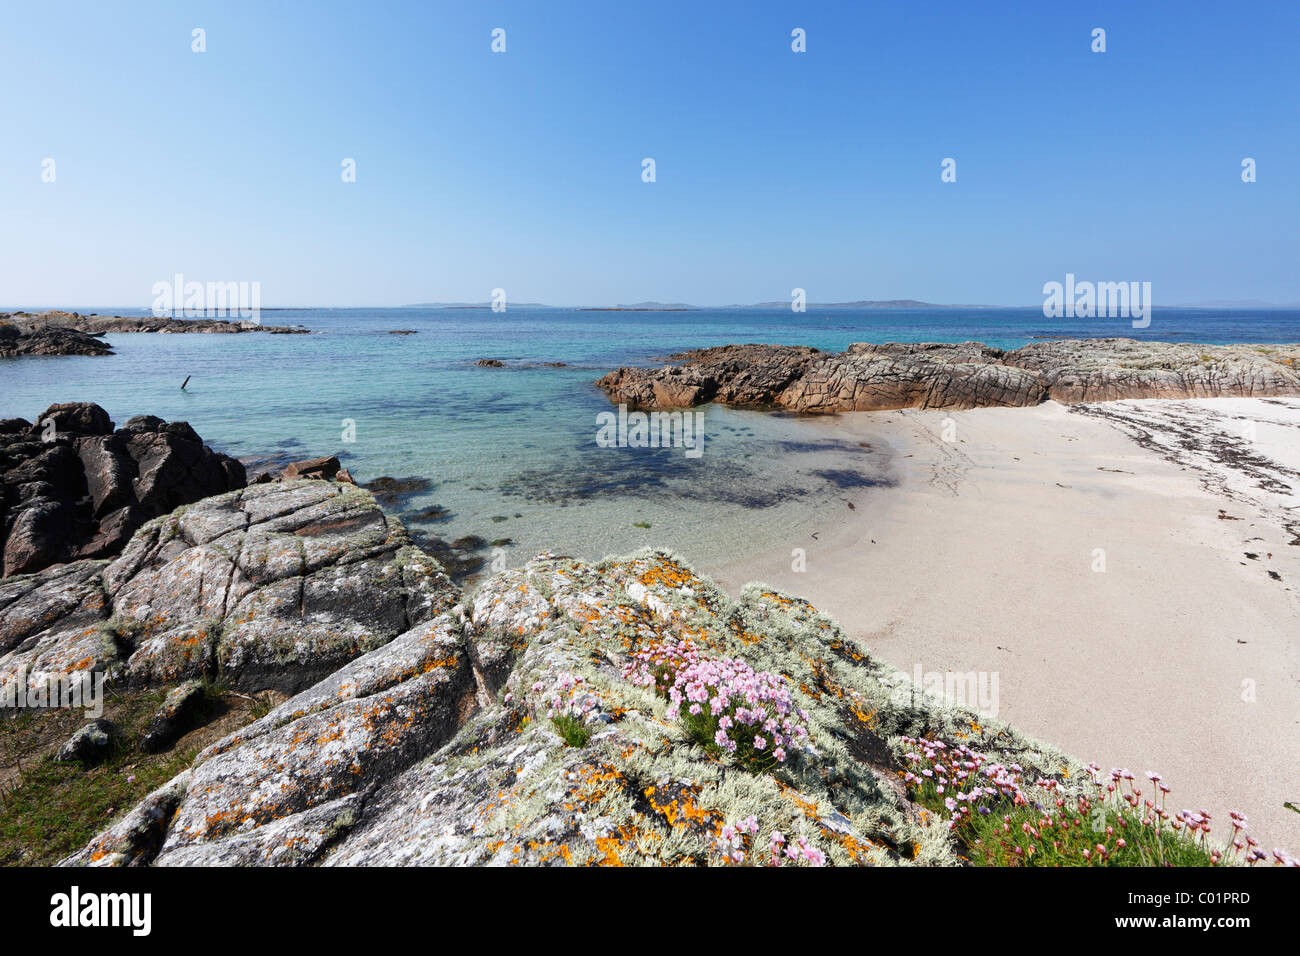 Coast, Aughrus Beg, Connemara, County Galway, Republic of Ireland, Europe - Stock Image